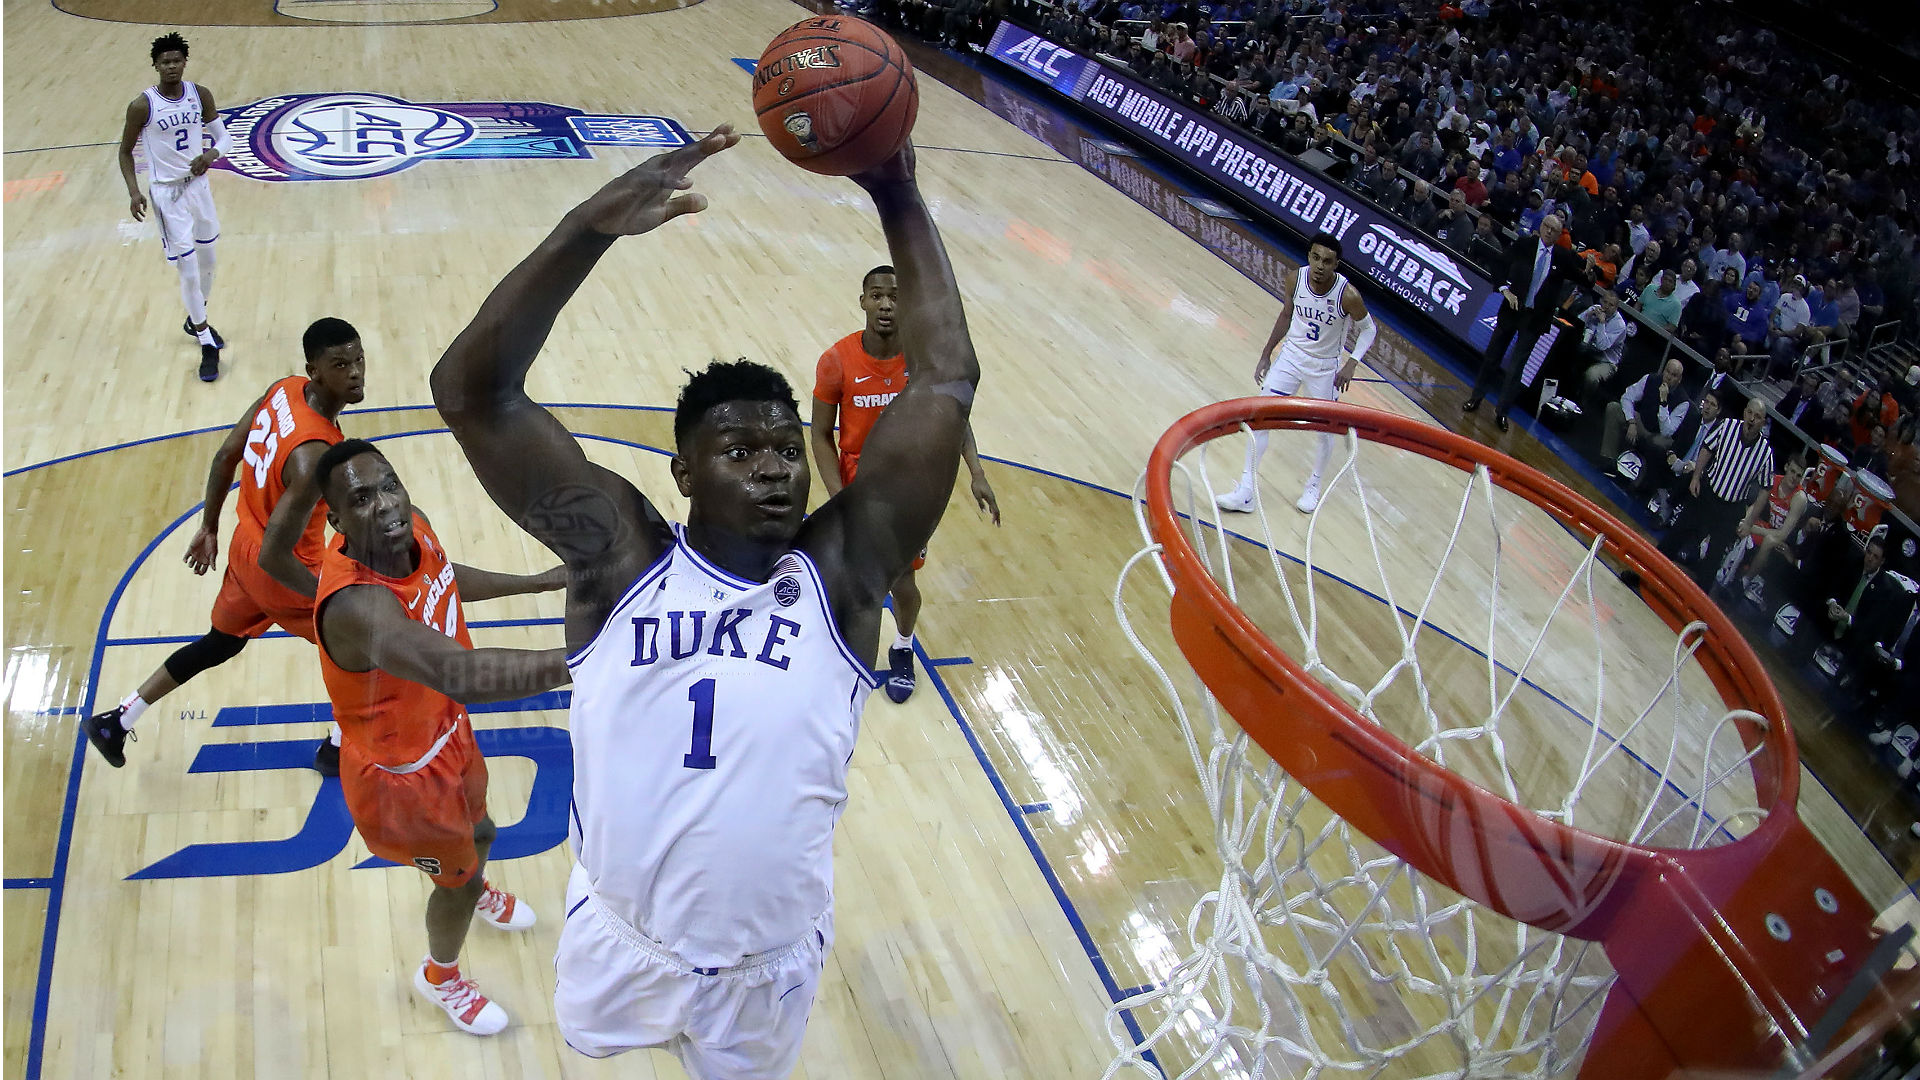 March Madness 2019: 3 takeaways from Duke's win over Syracuse in Zion Williamson's return